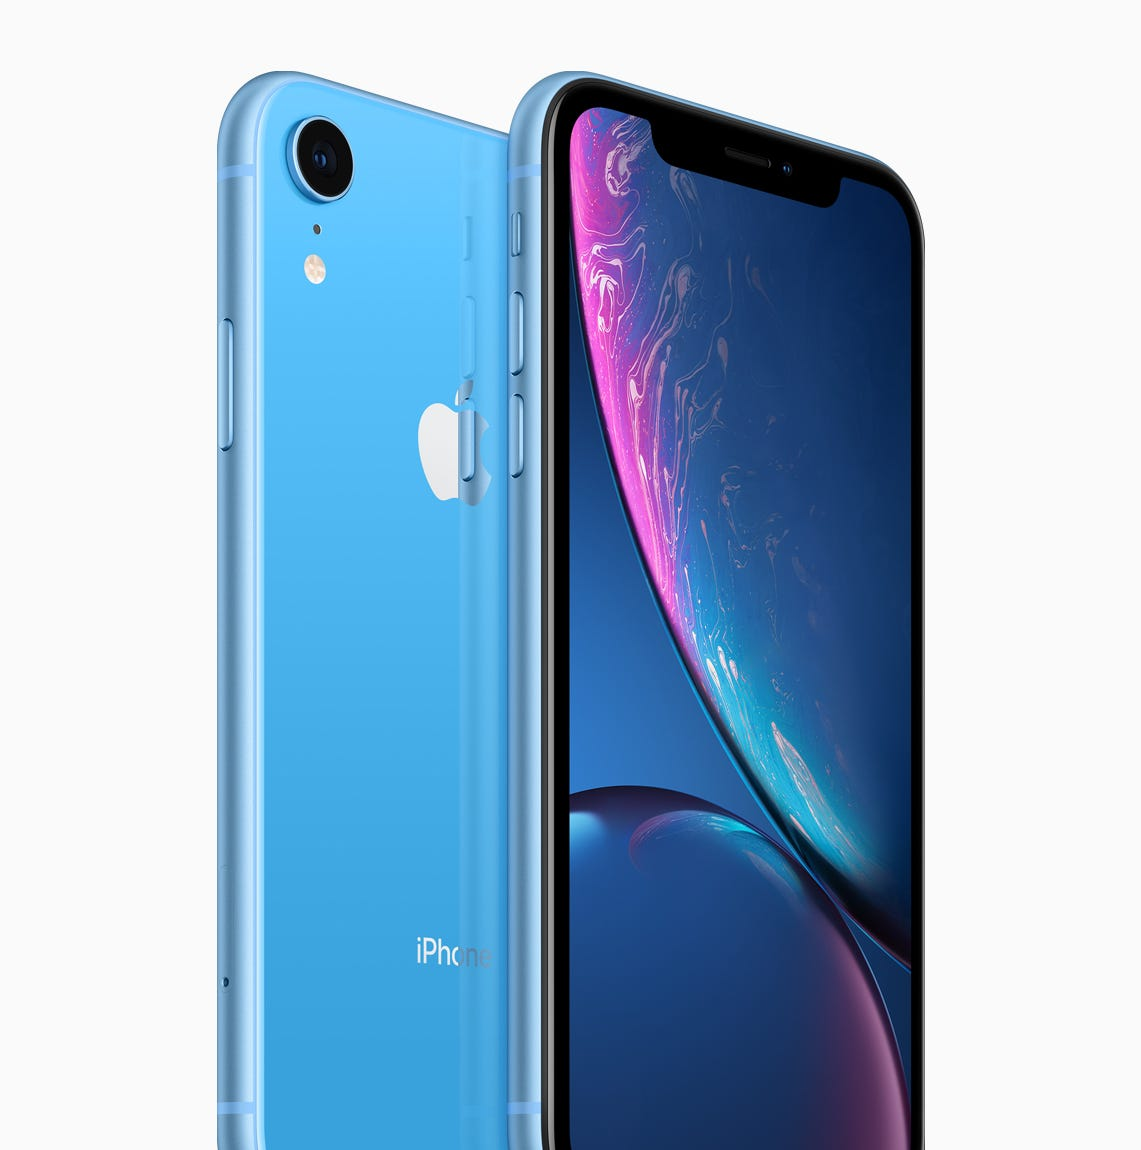 Apple's iPhone XR in blue